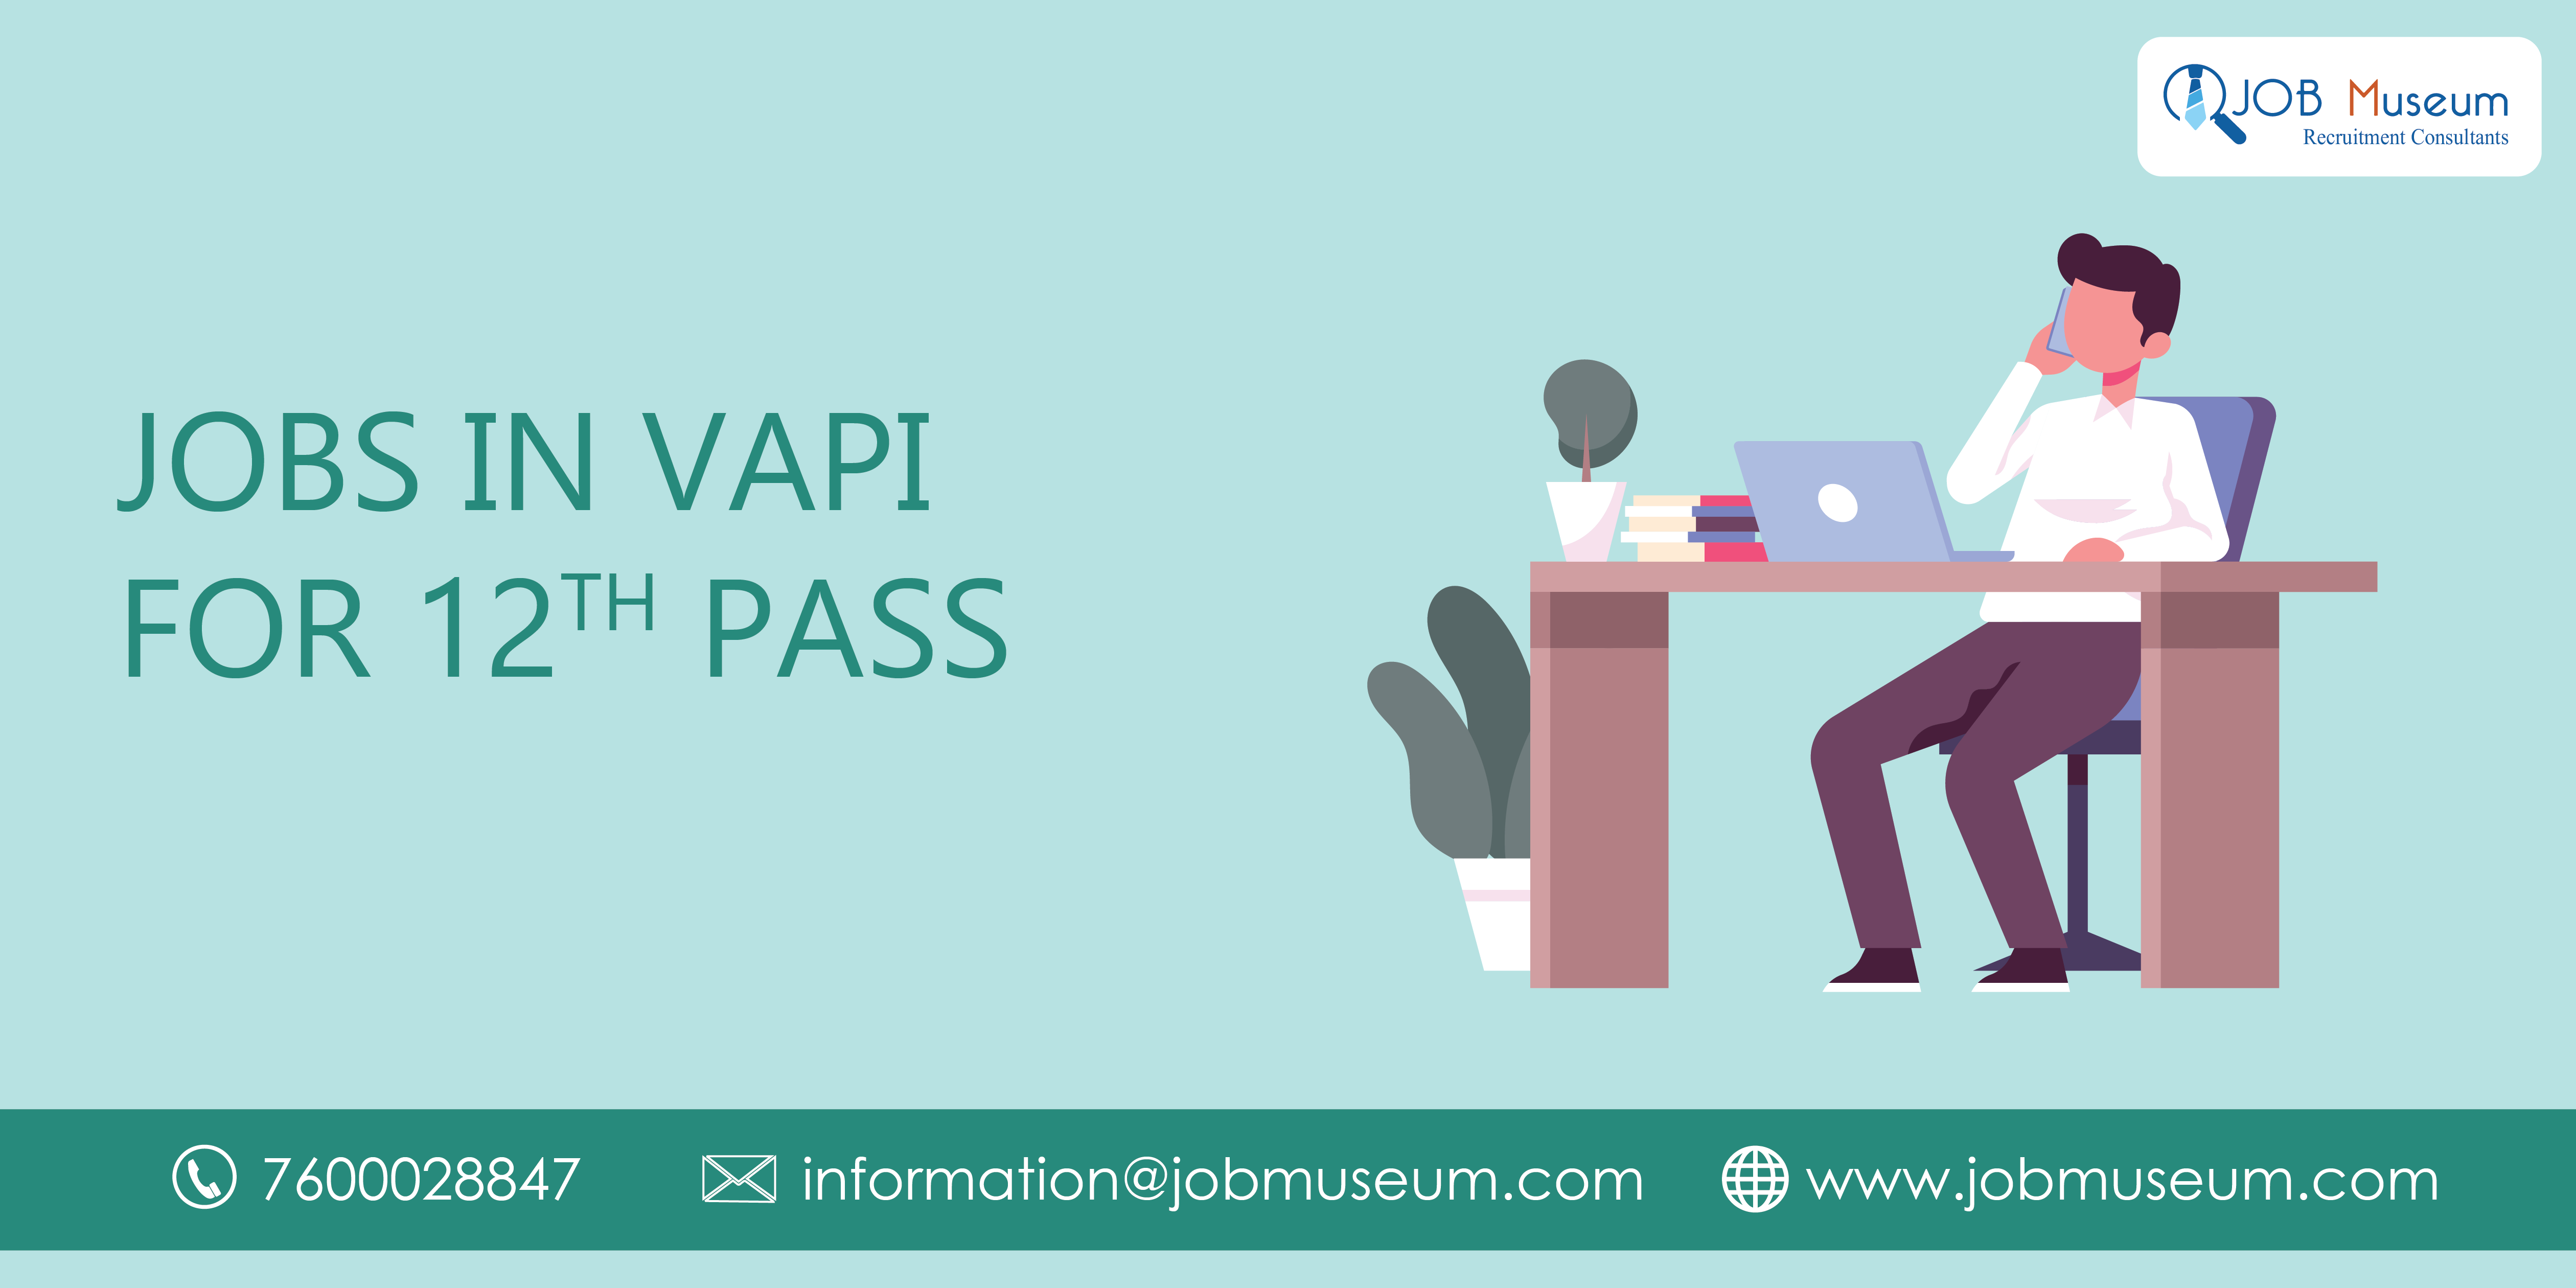 Jobs in vapi for 12th pass